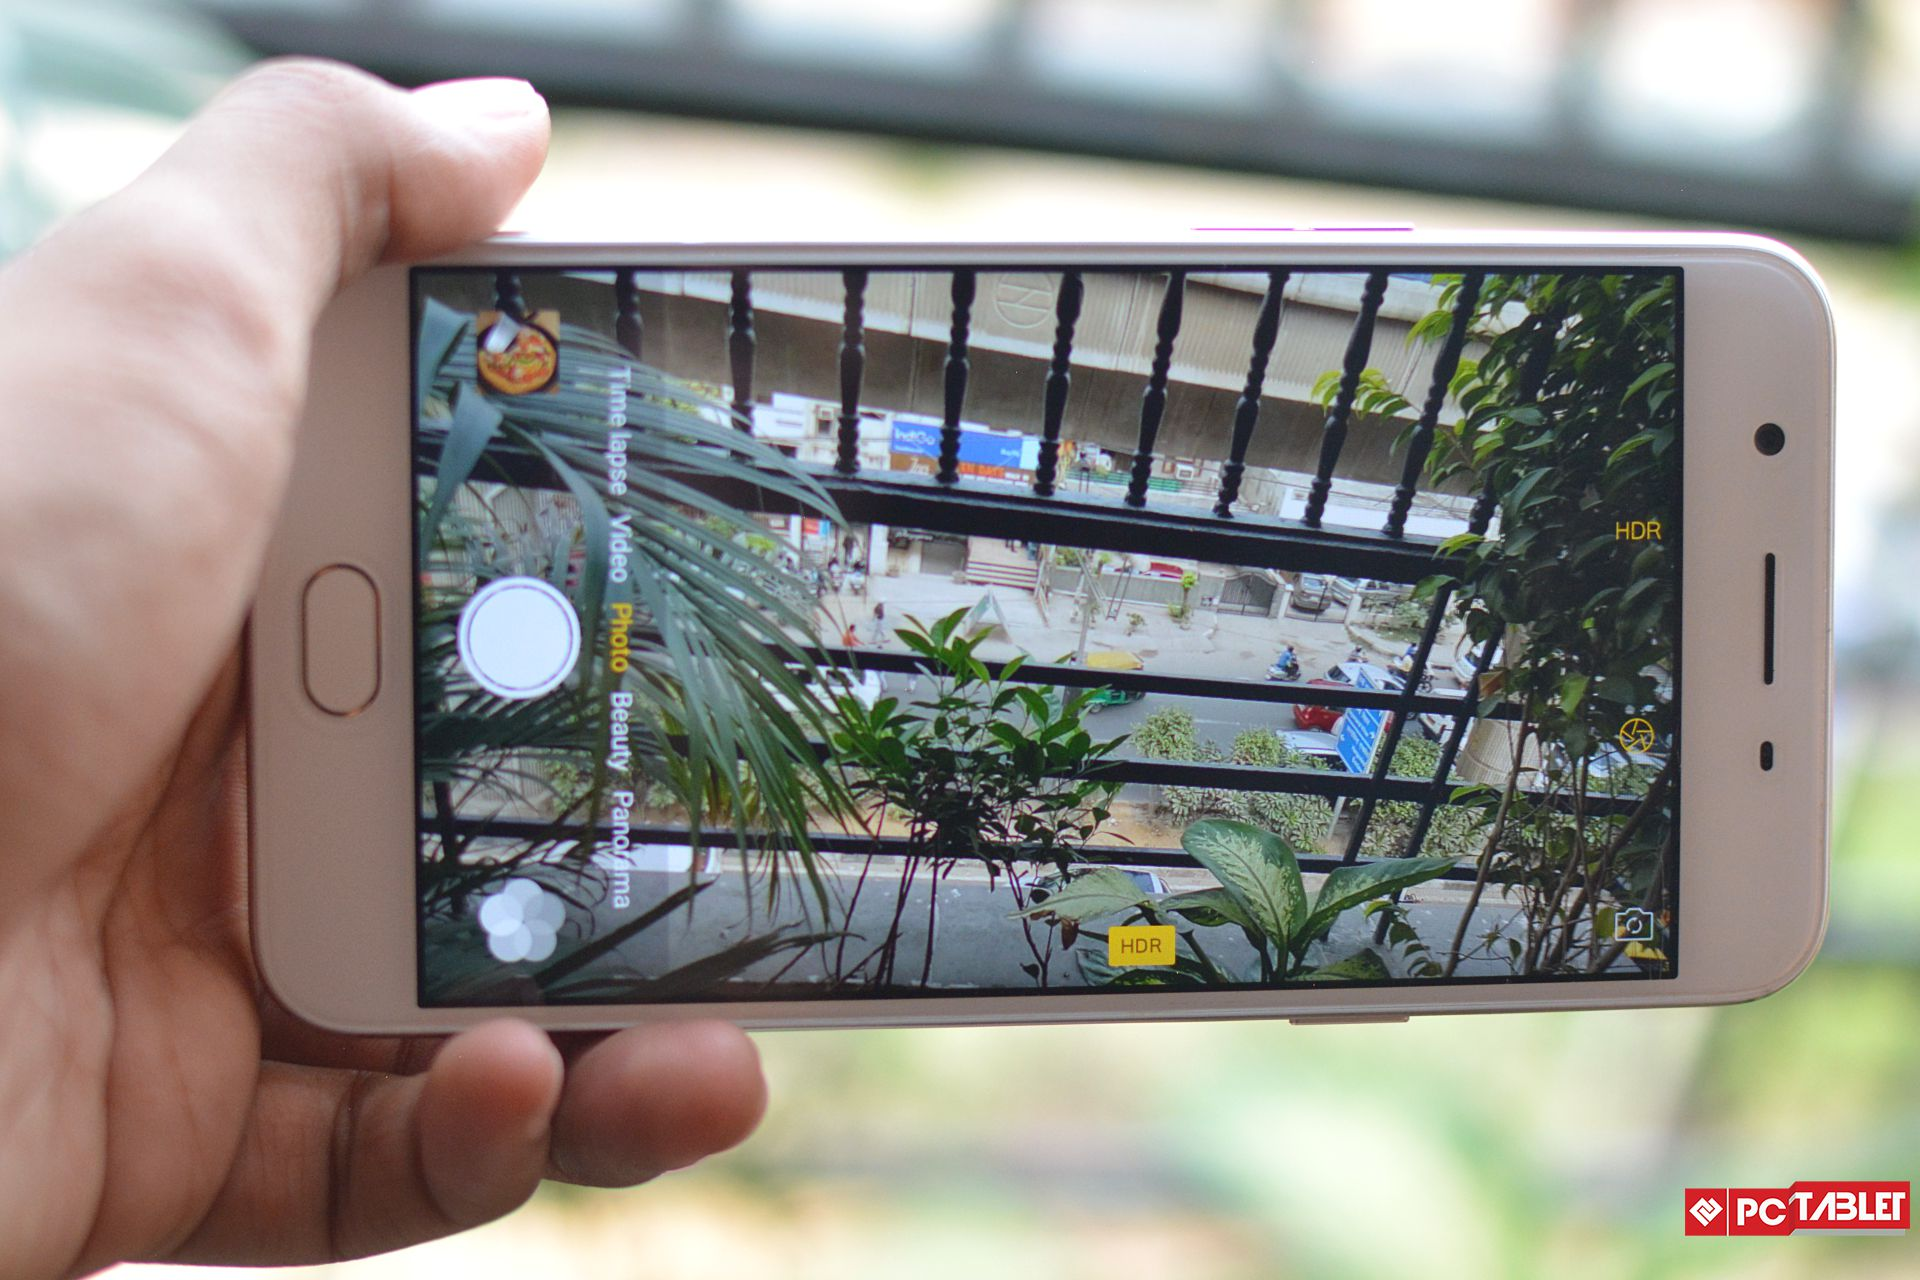 Oppo-F1s-camera-review